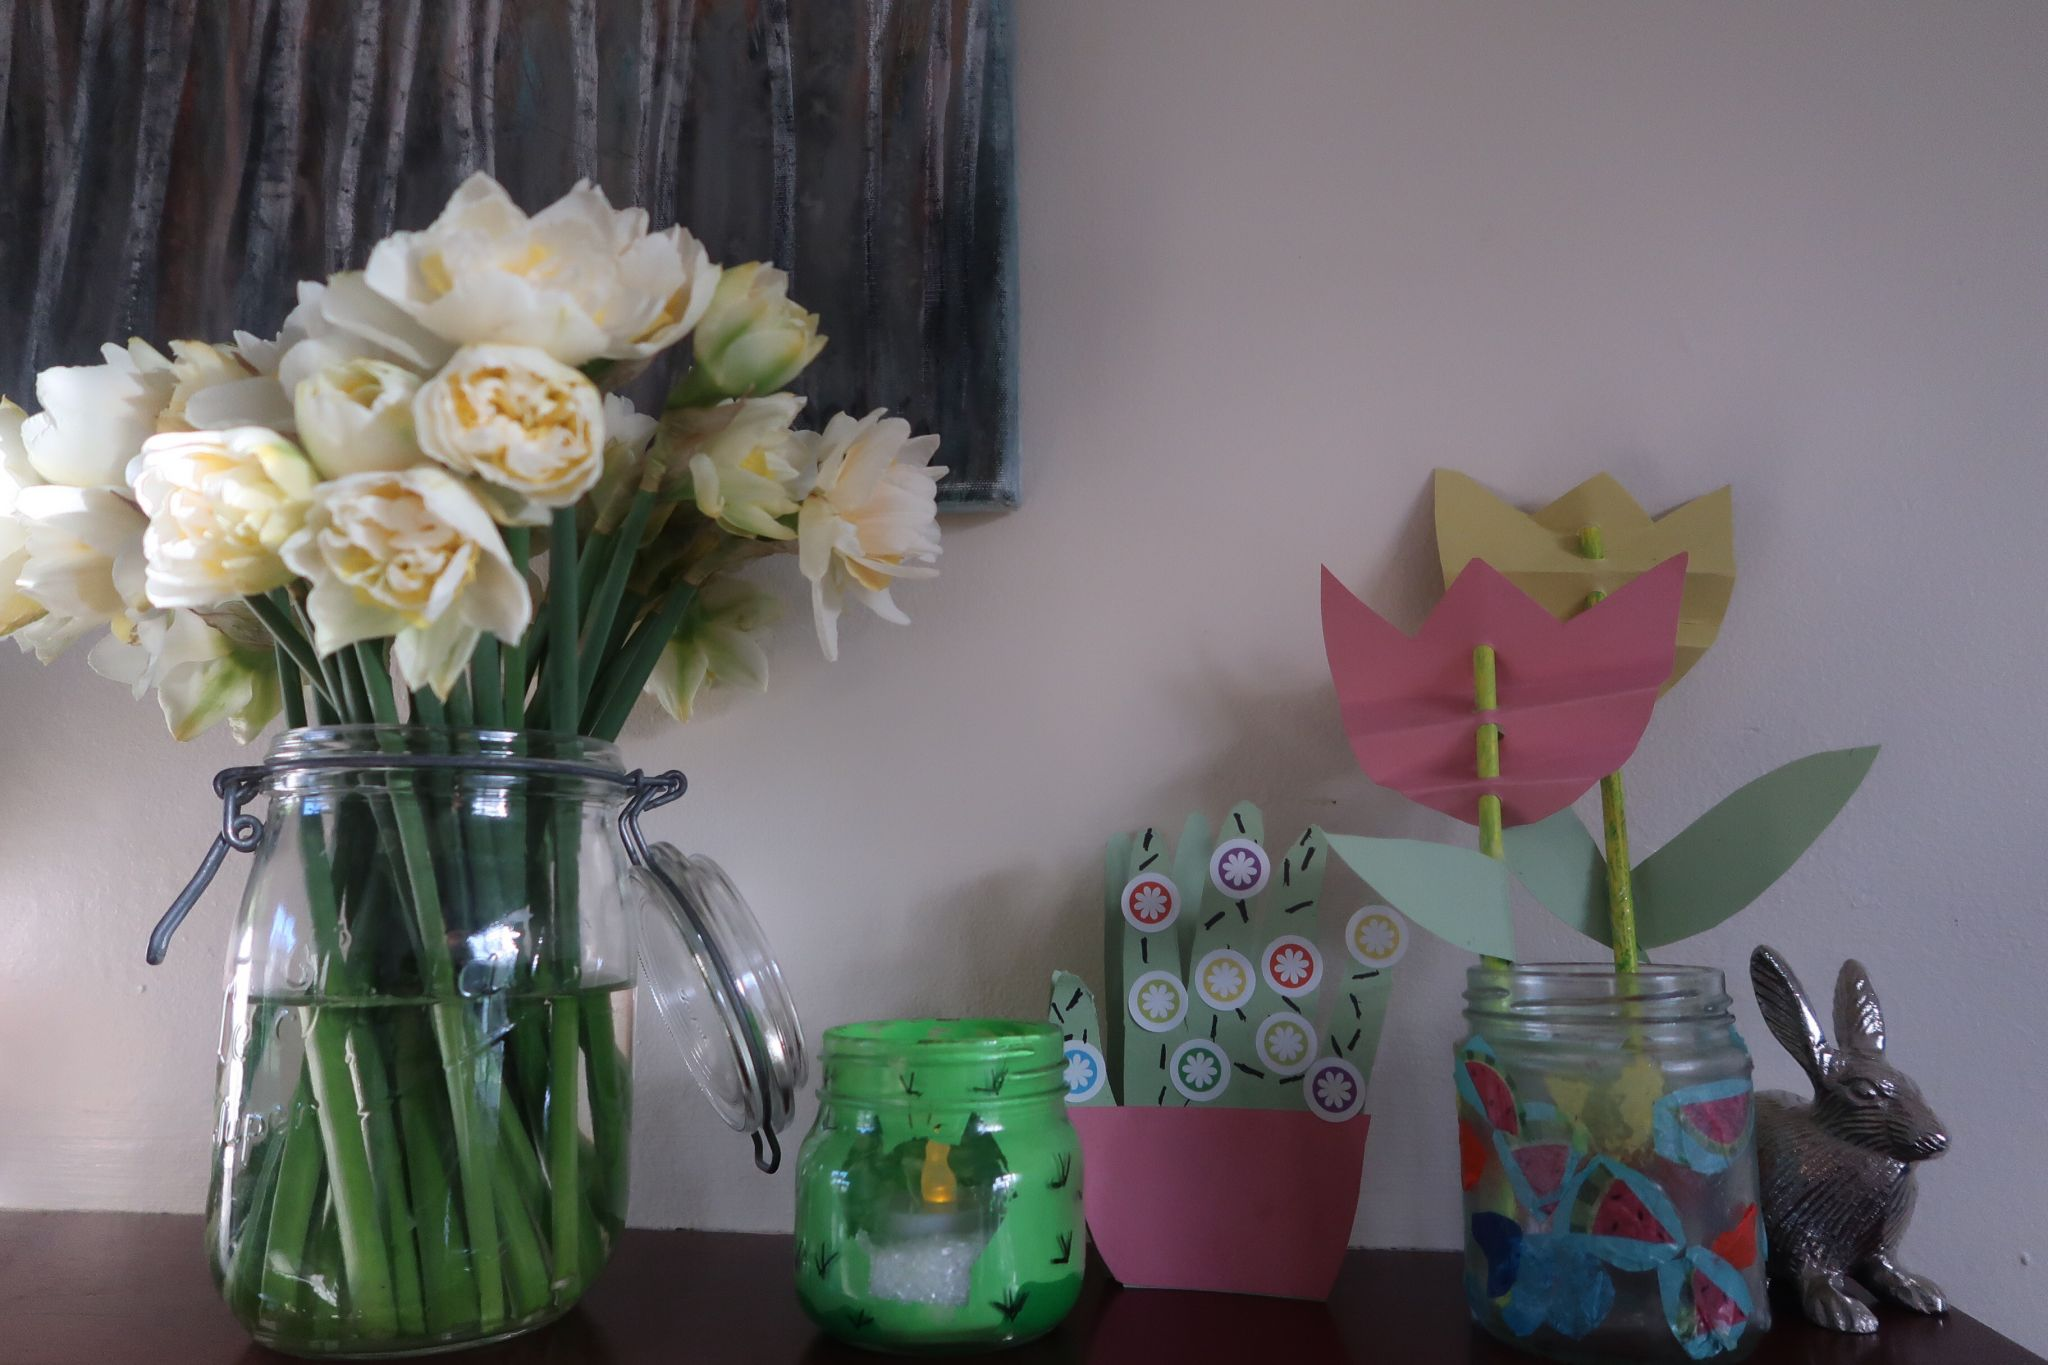 Vase of daffodils sat next to a homemade cacti card, tulip card and homemade jar lanterns.